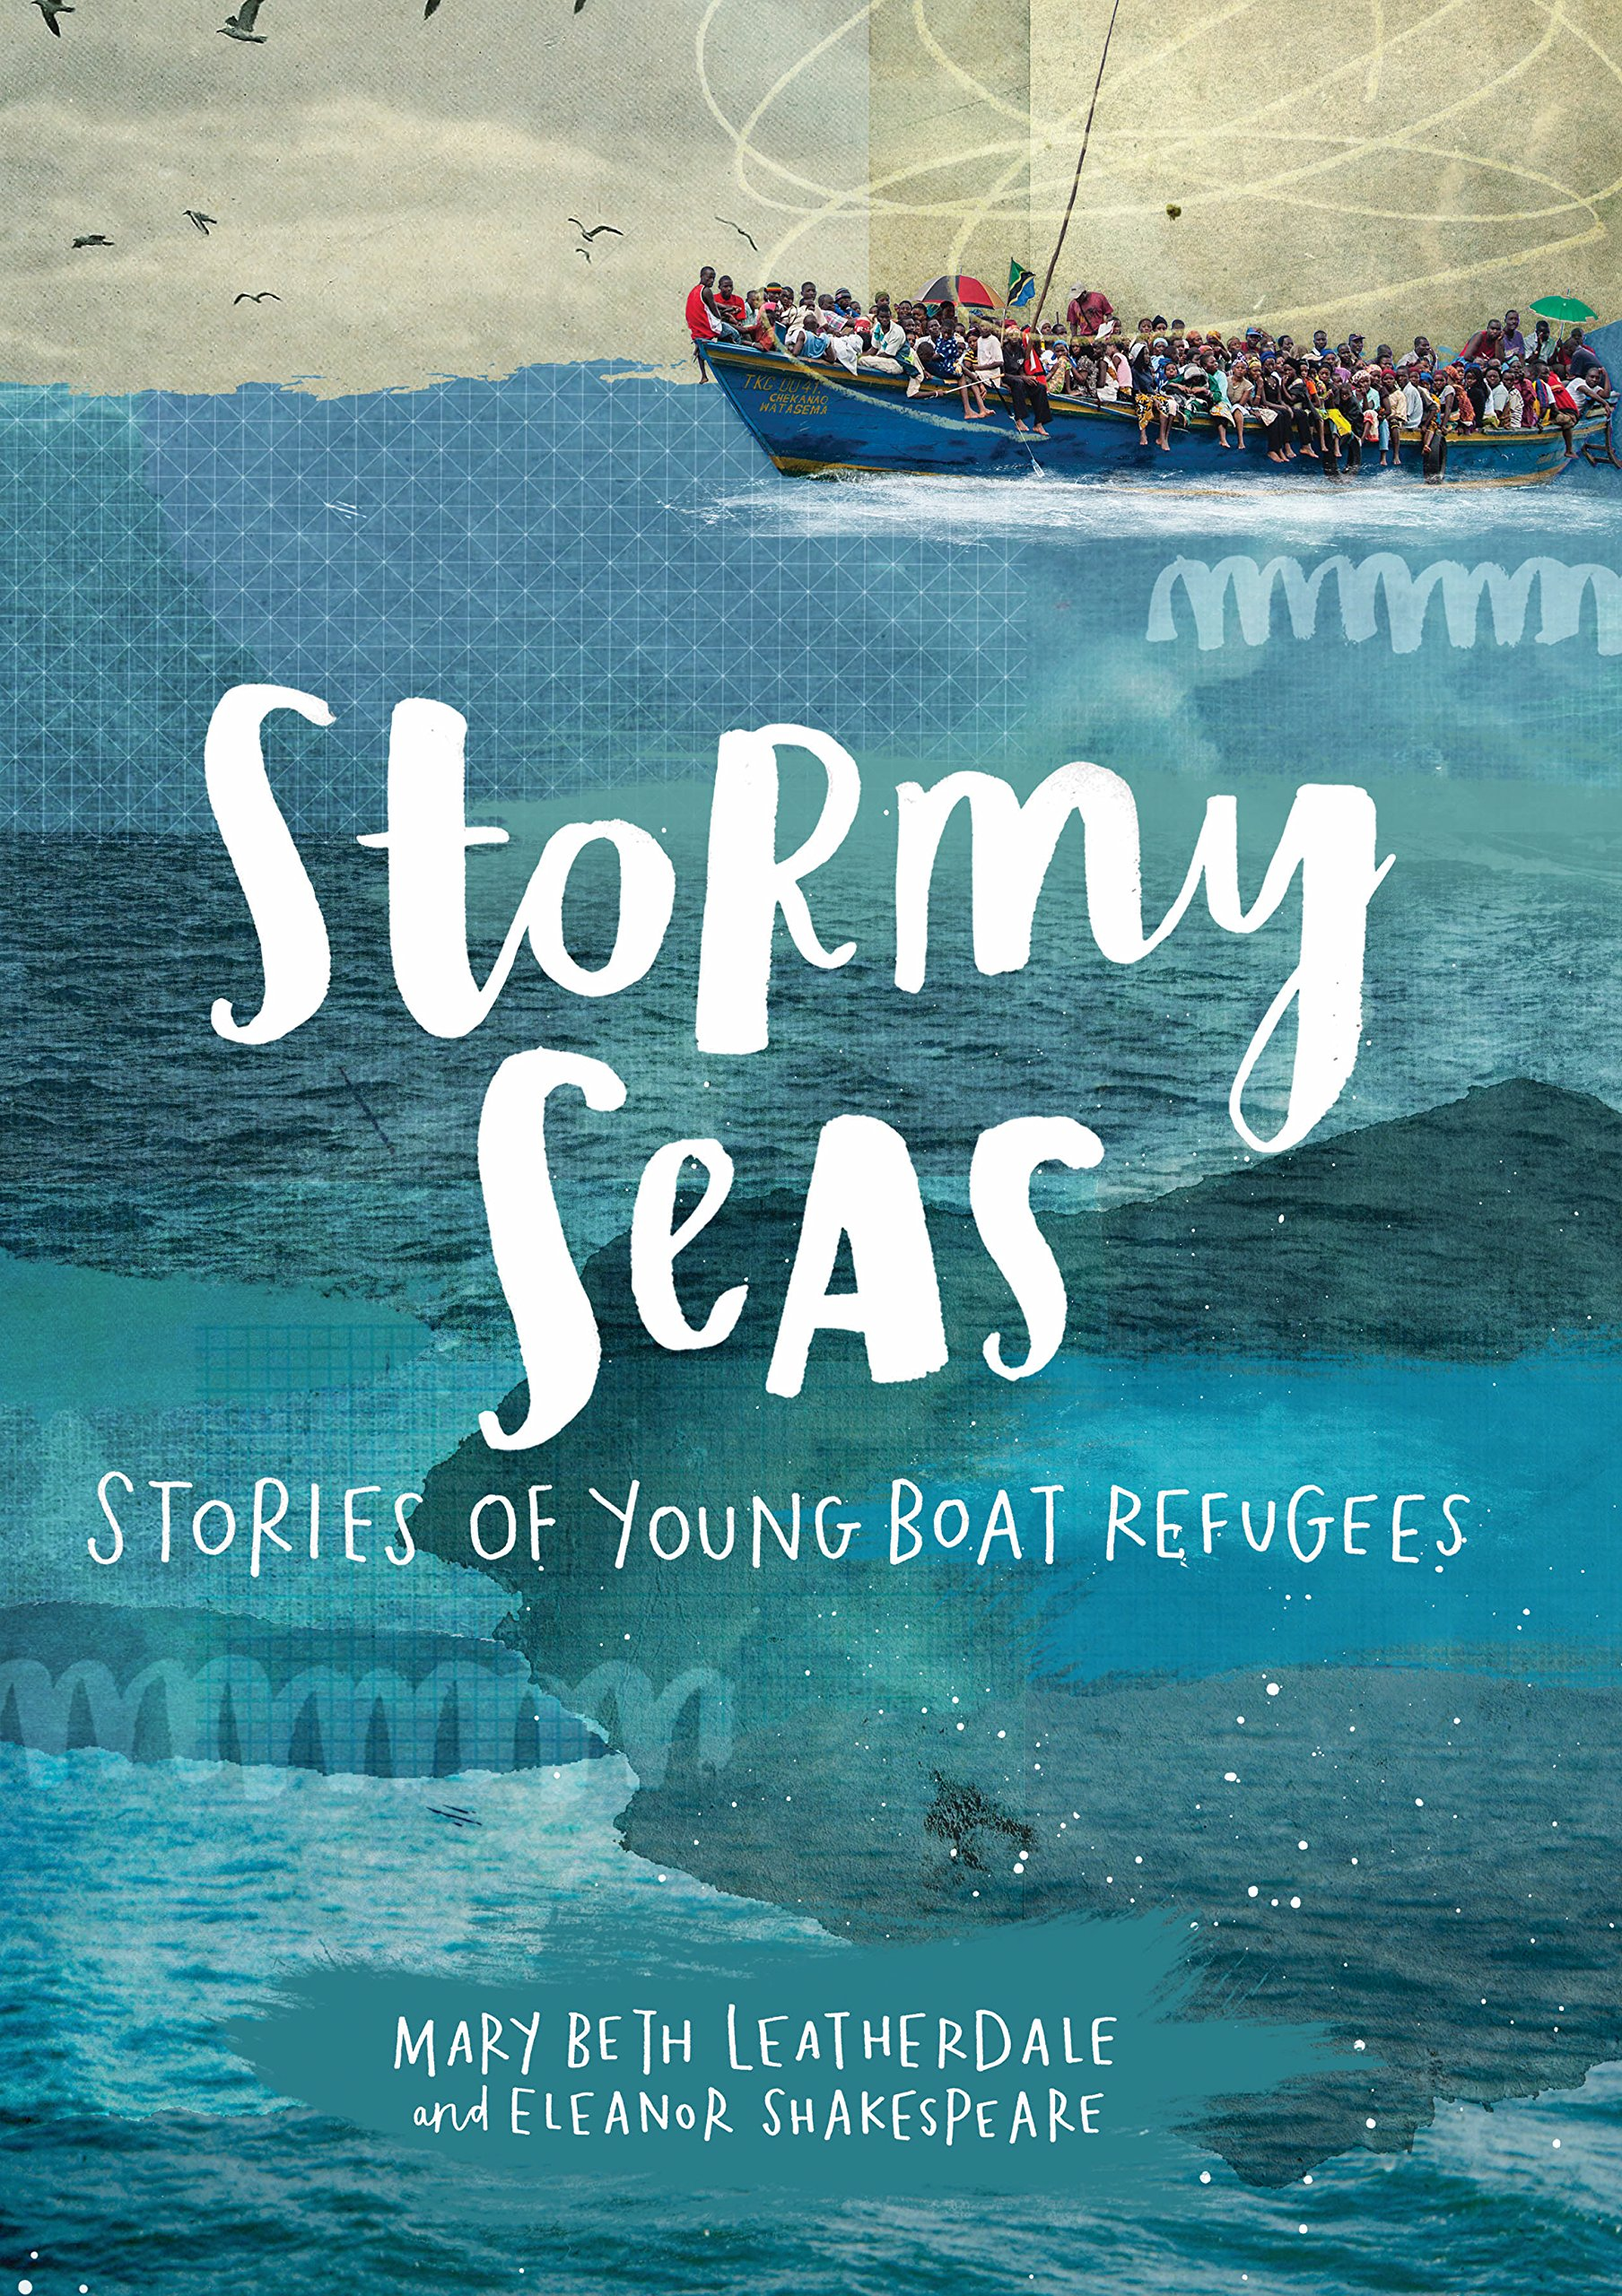 Stormy Seas: Stories of Young Boat Refugees, by Mary Beth Leatherdale